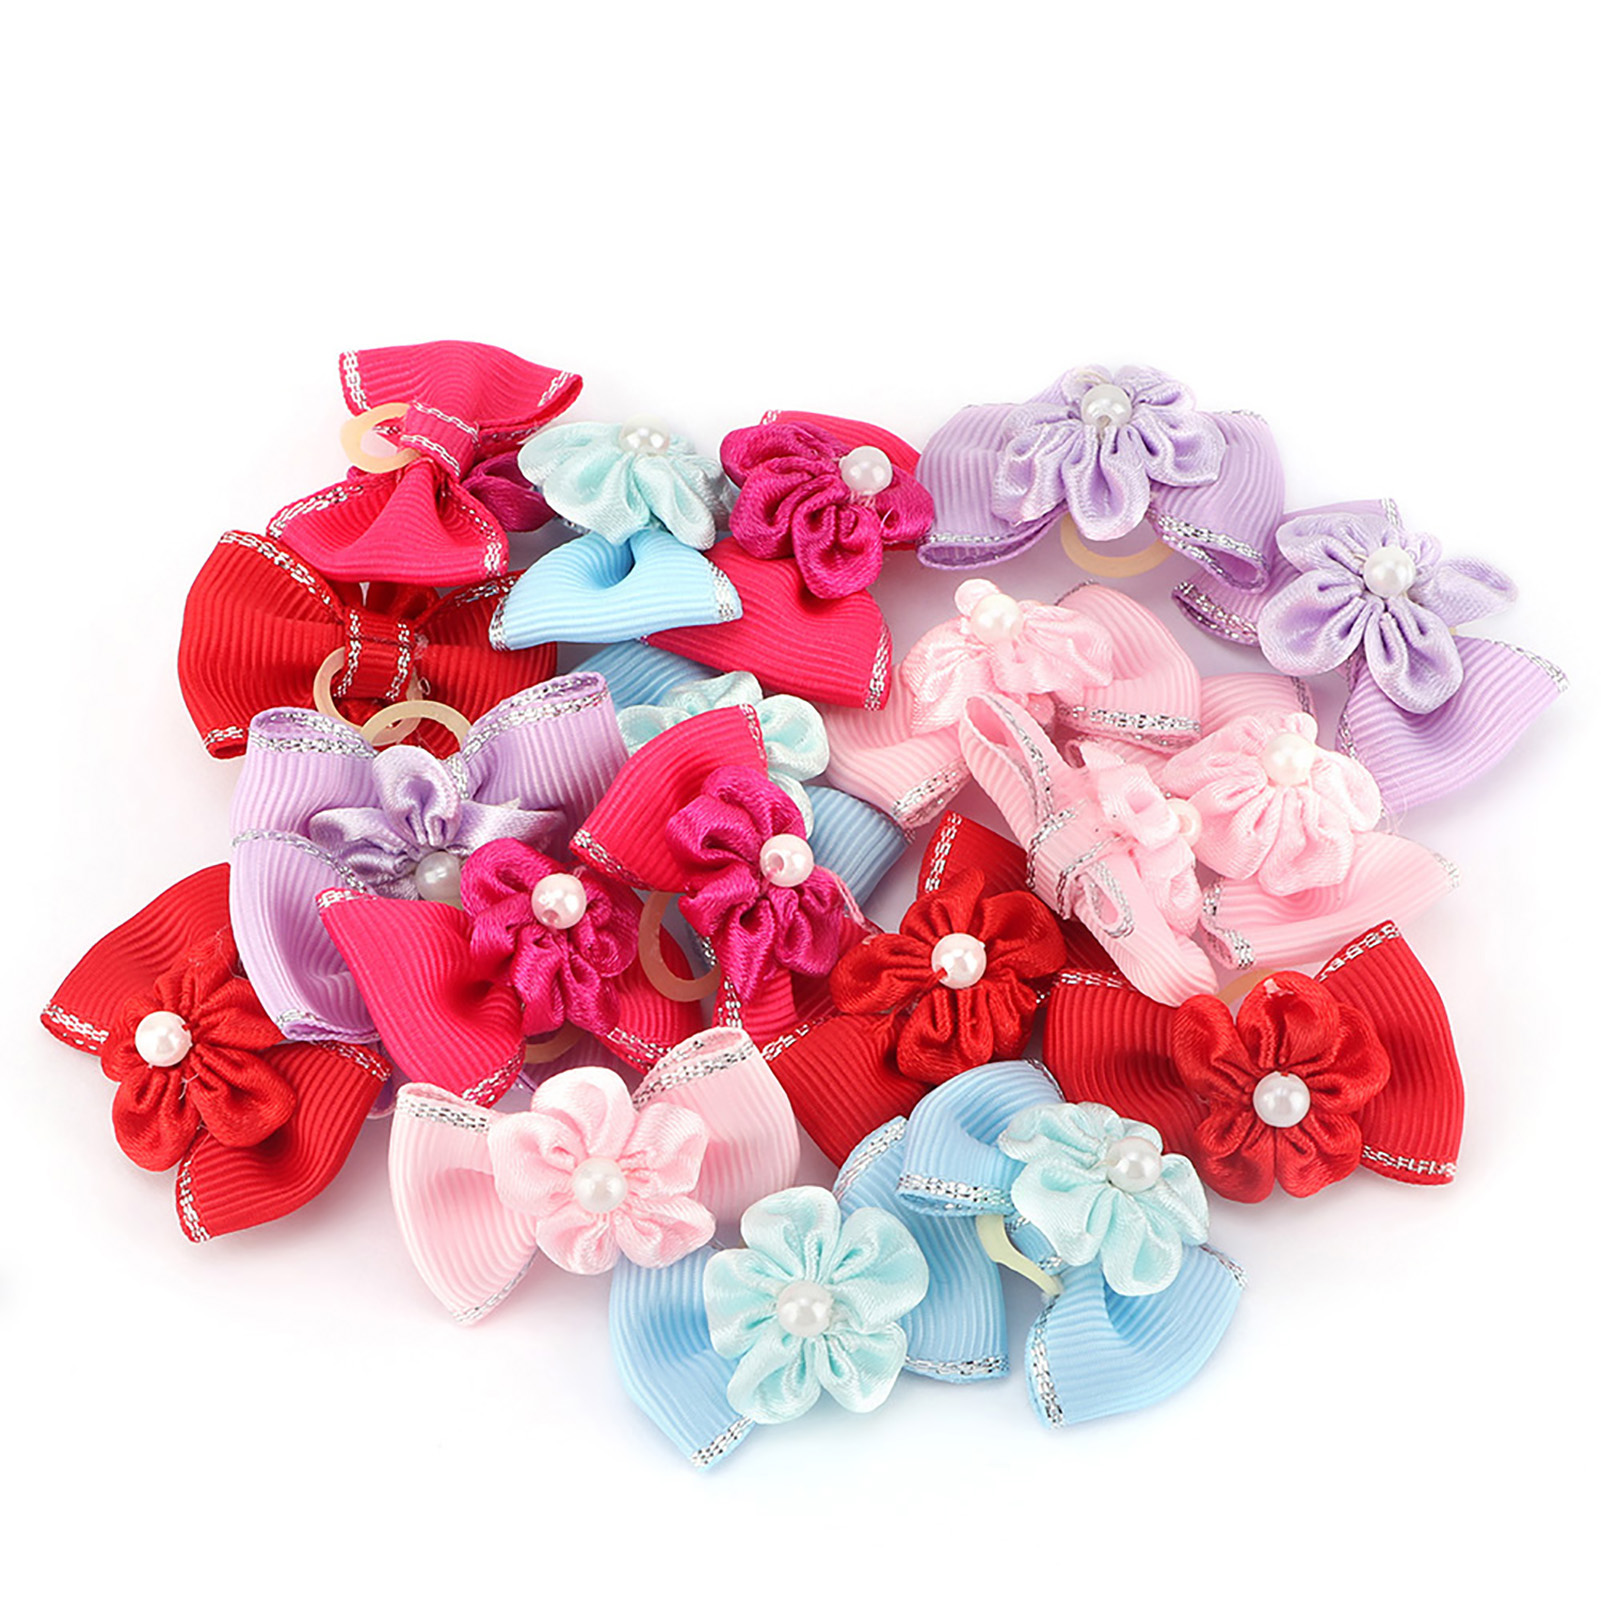 10-20-30Pcs-Pet-Dog-Hair-Bow-Rubber-Band-Small-Cat-Puppy-Bowknot-Grooming thumbnail 17